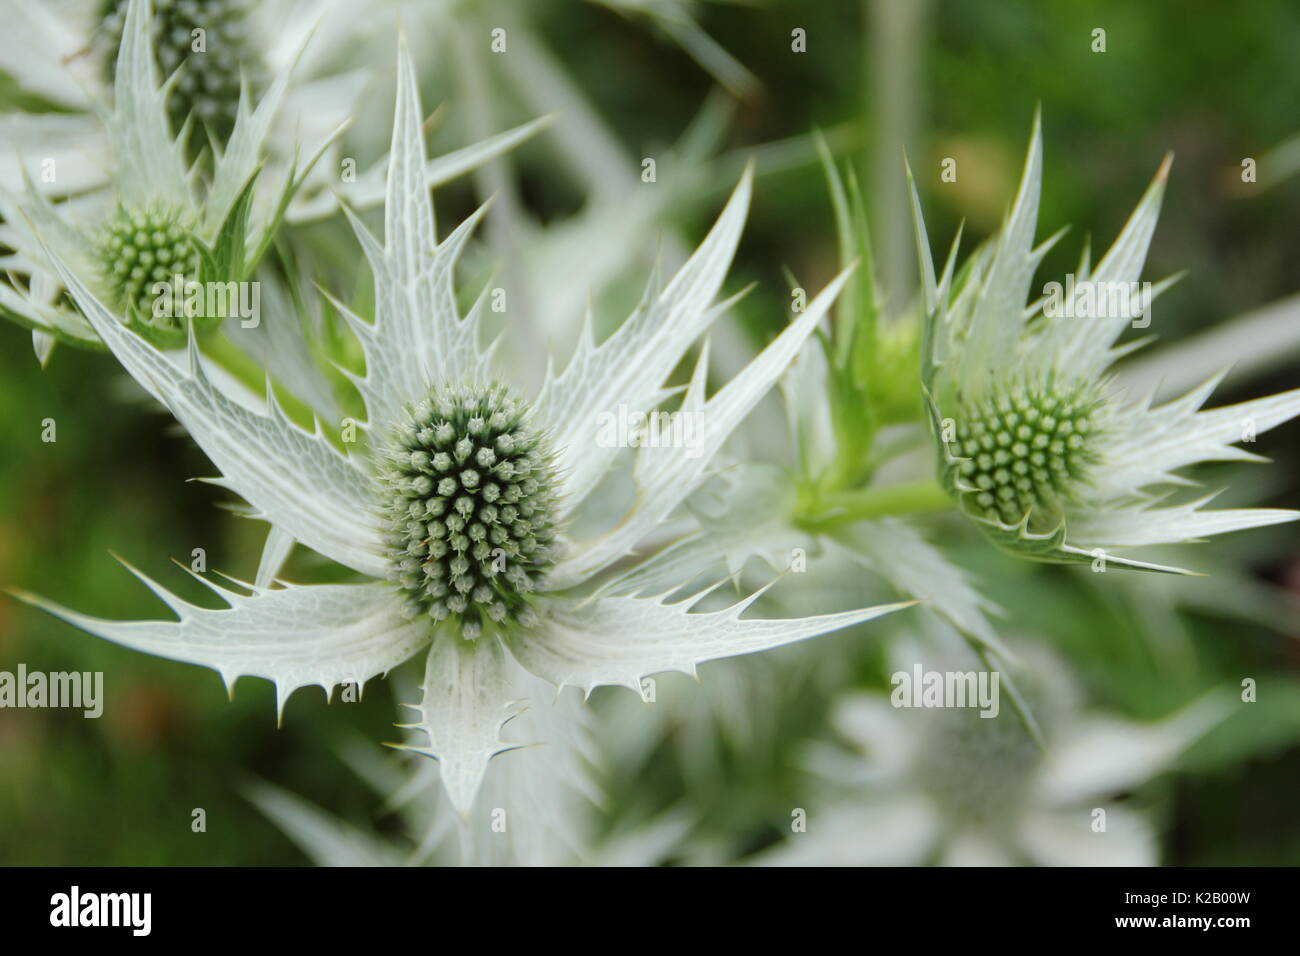 Tall Spikey Flowers Stock Photos Tall Spikey Flowers Stock Images